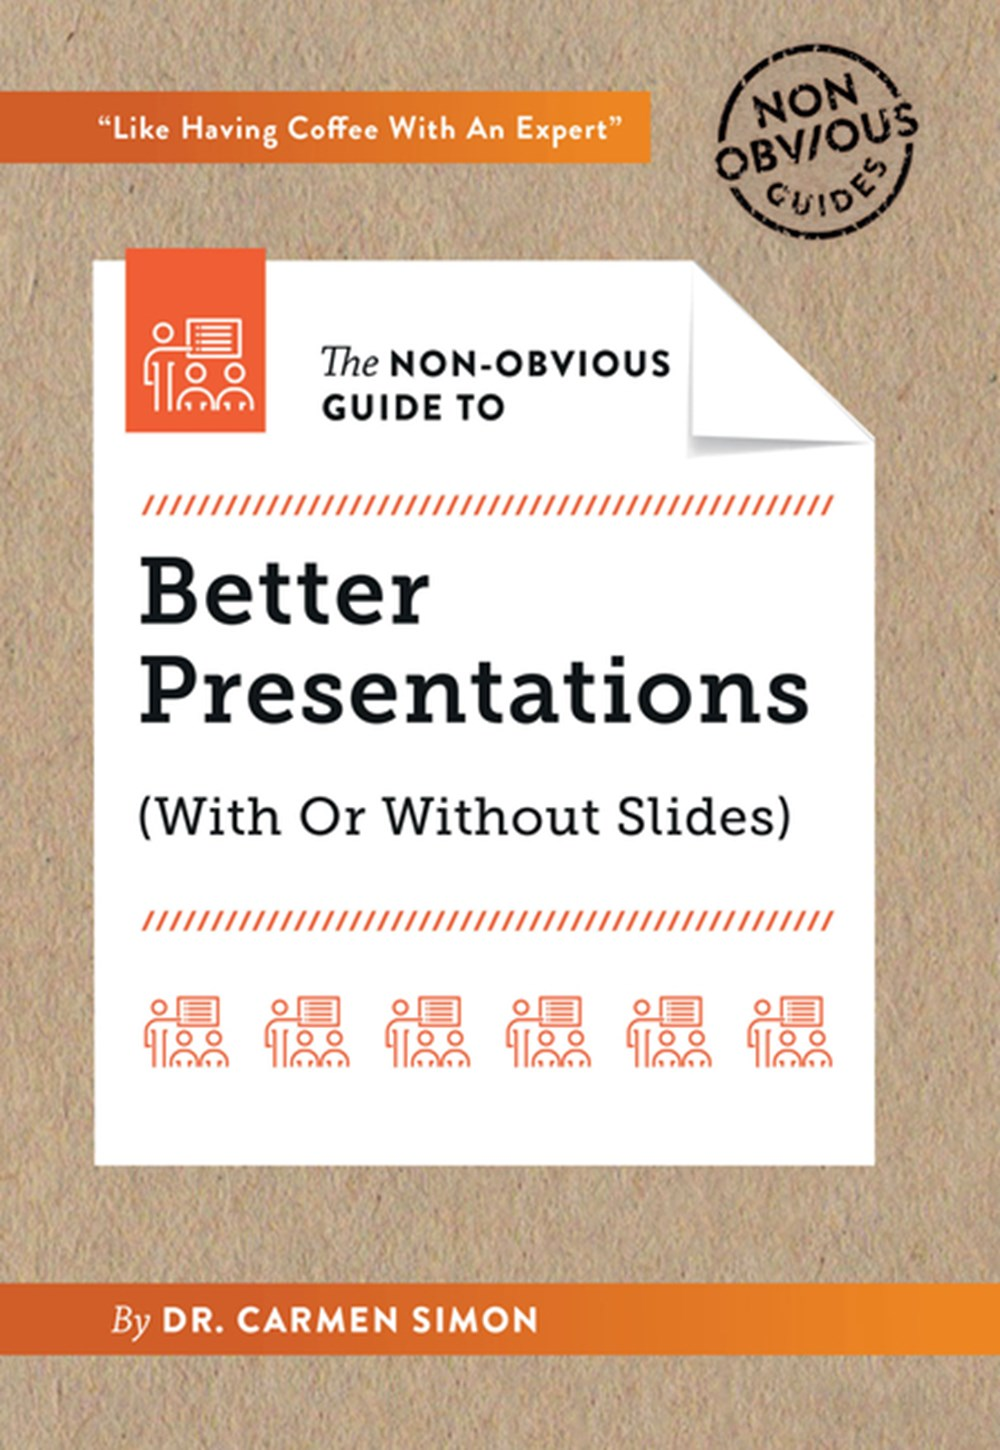 Non-Obvious Guide to Better Presentations